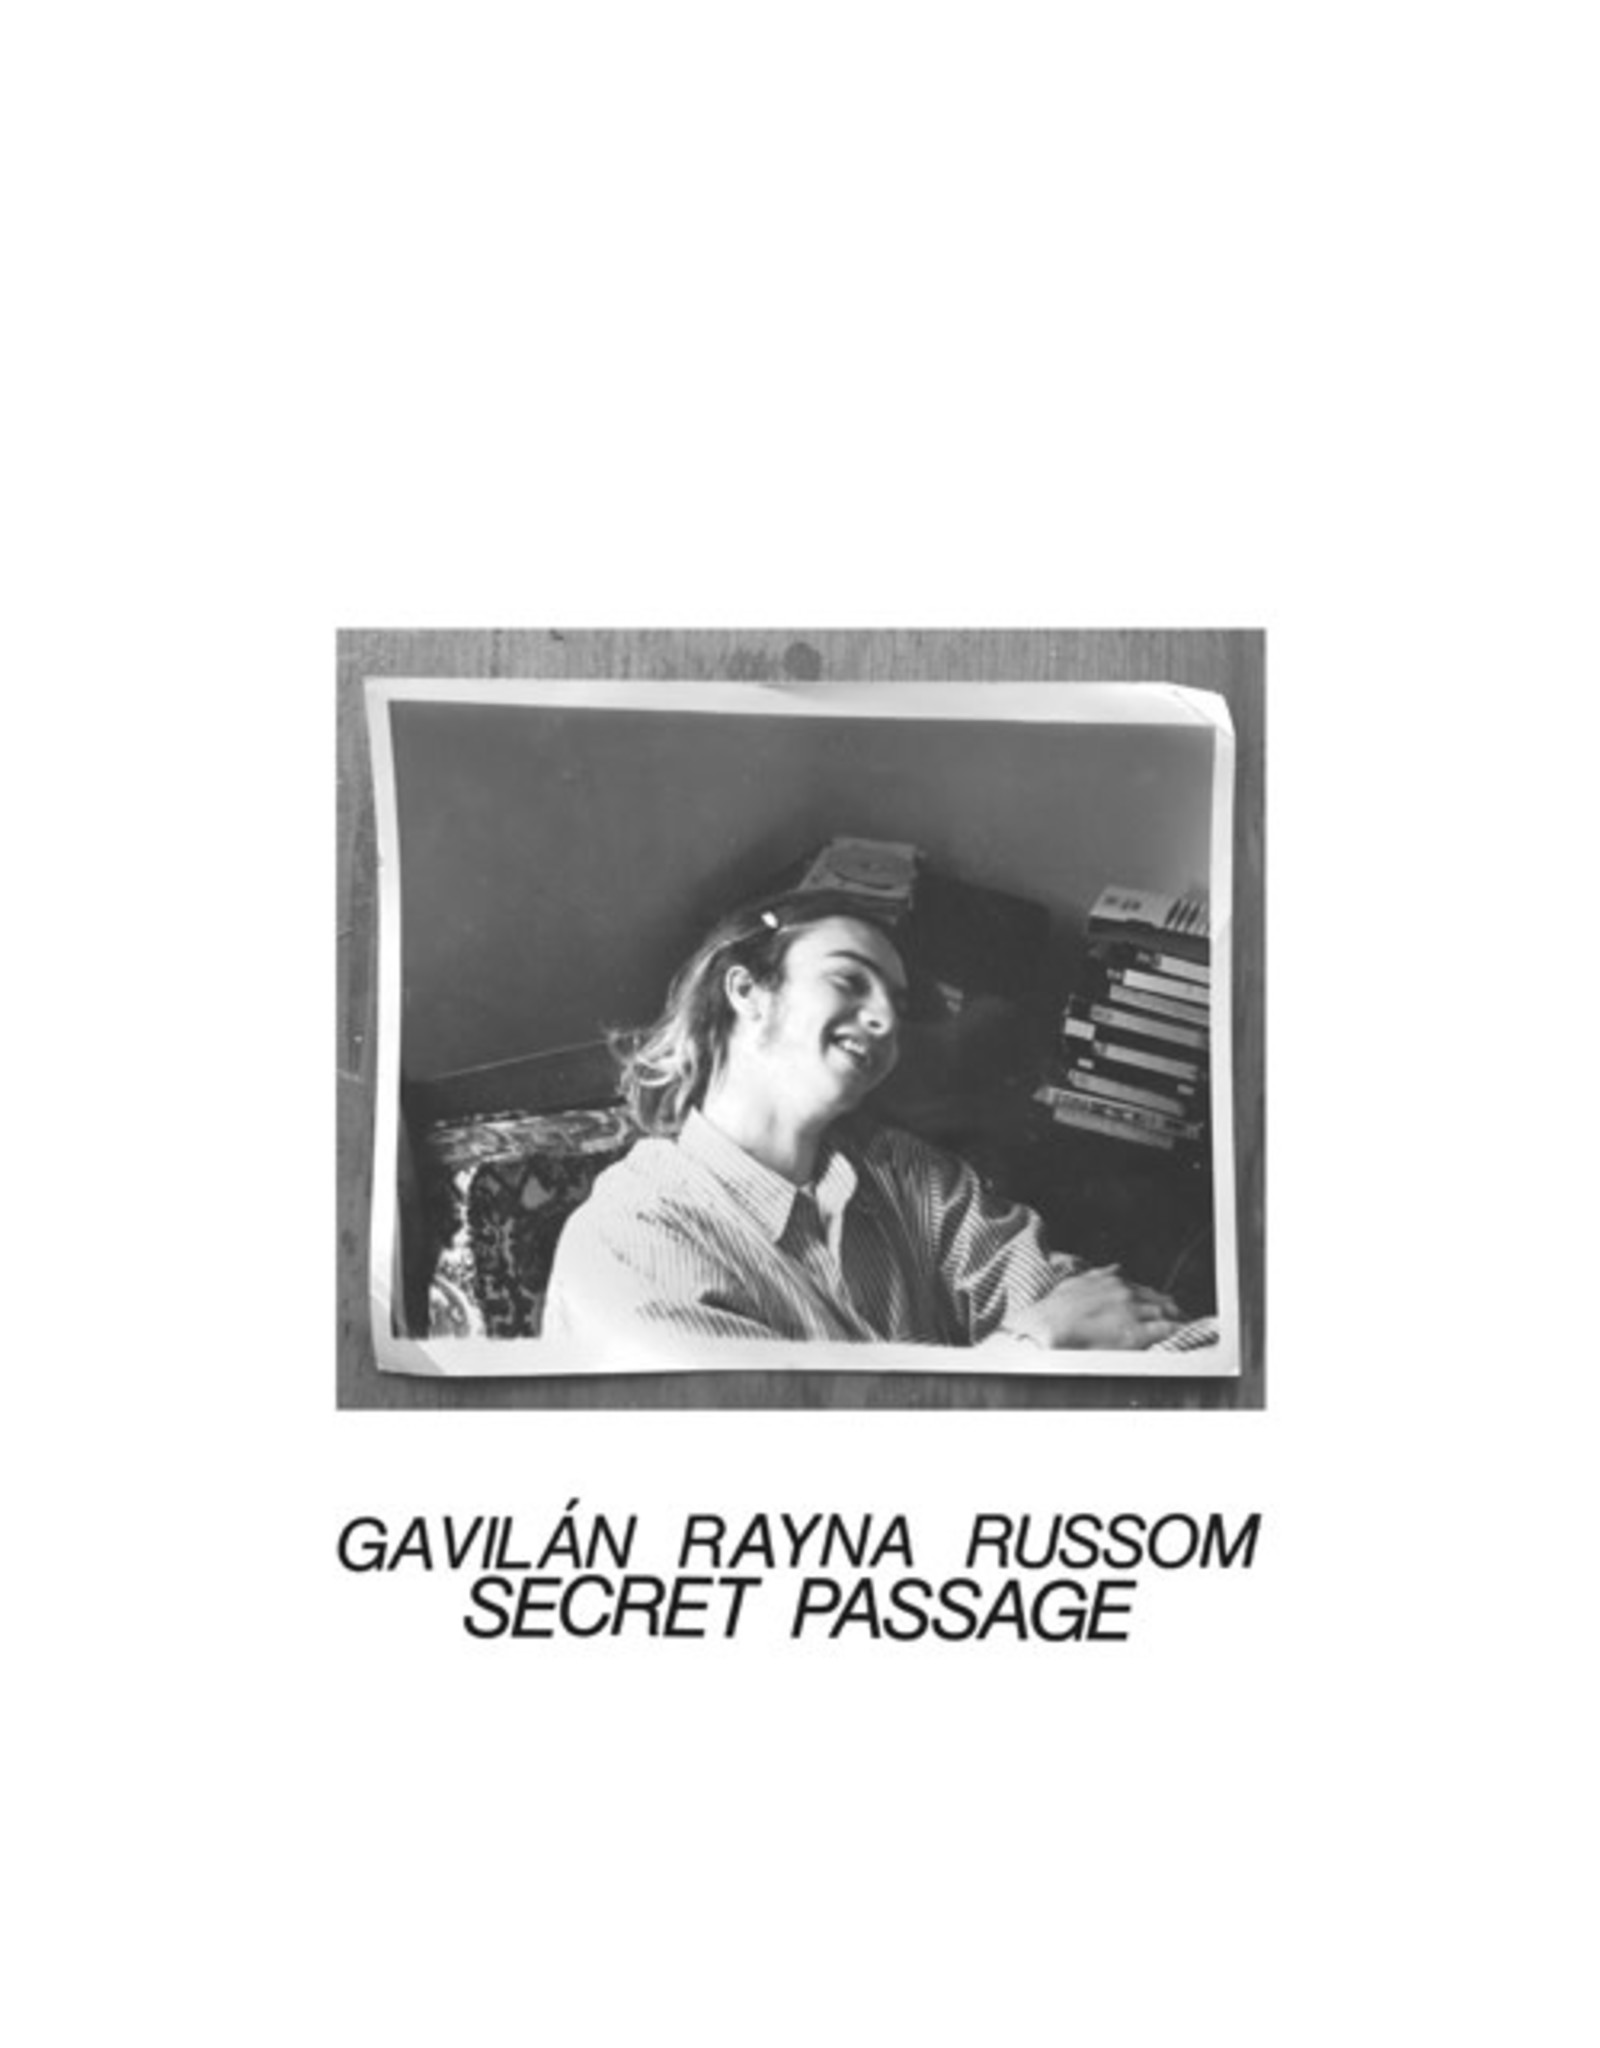 New Vinyl Gavilán Rayna Russom - Secret Passage 2LP